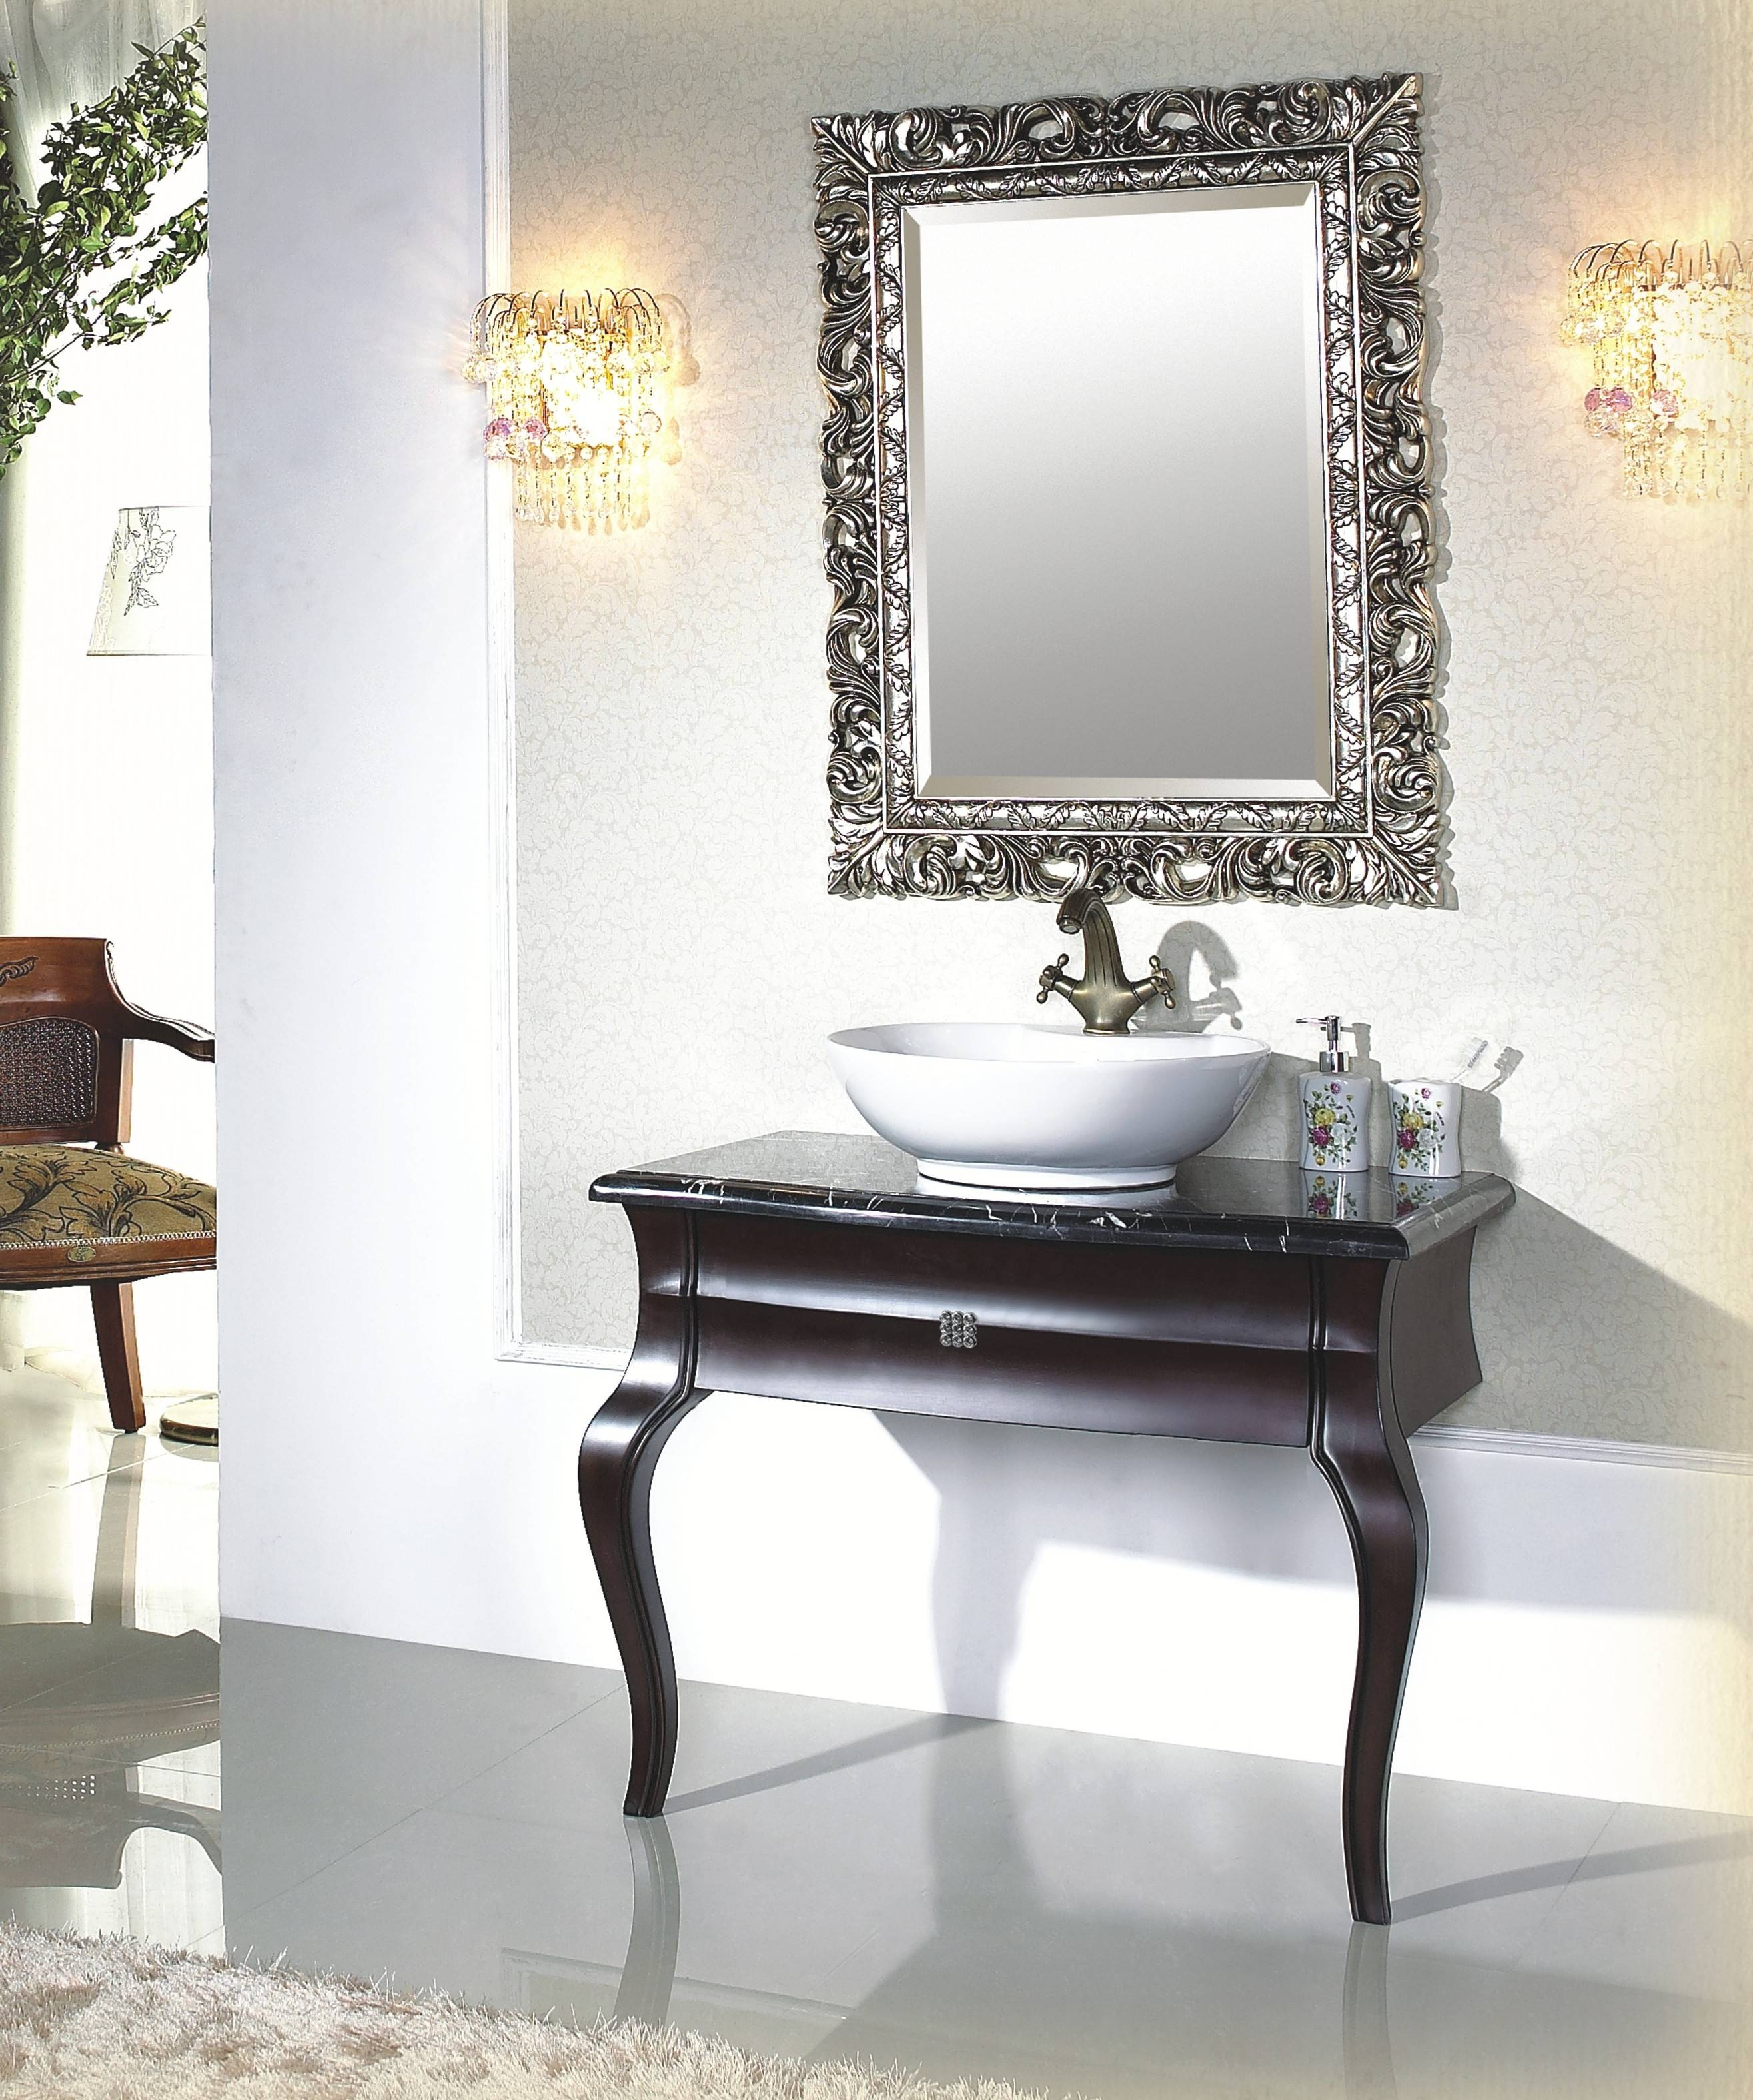 Silver Bathroom Mirror Rectangular – Harpsounds.co pertaining to Small Silver Mirrors (Image 21 of 25)